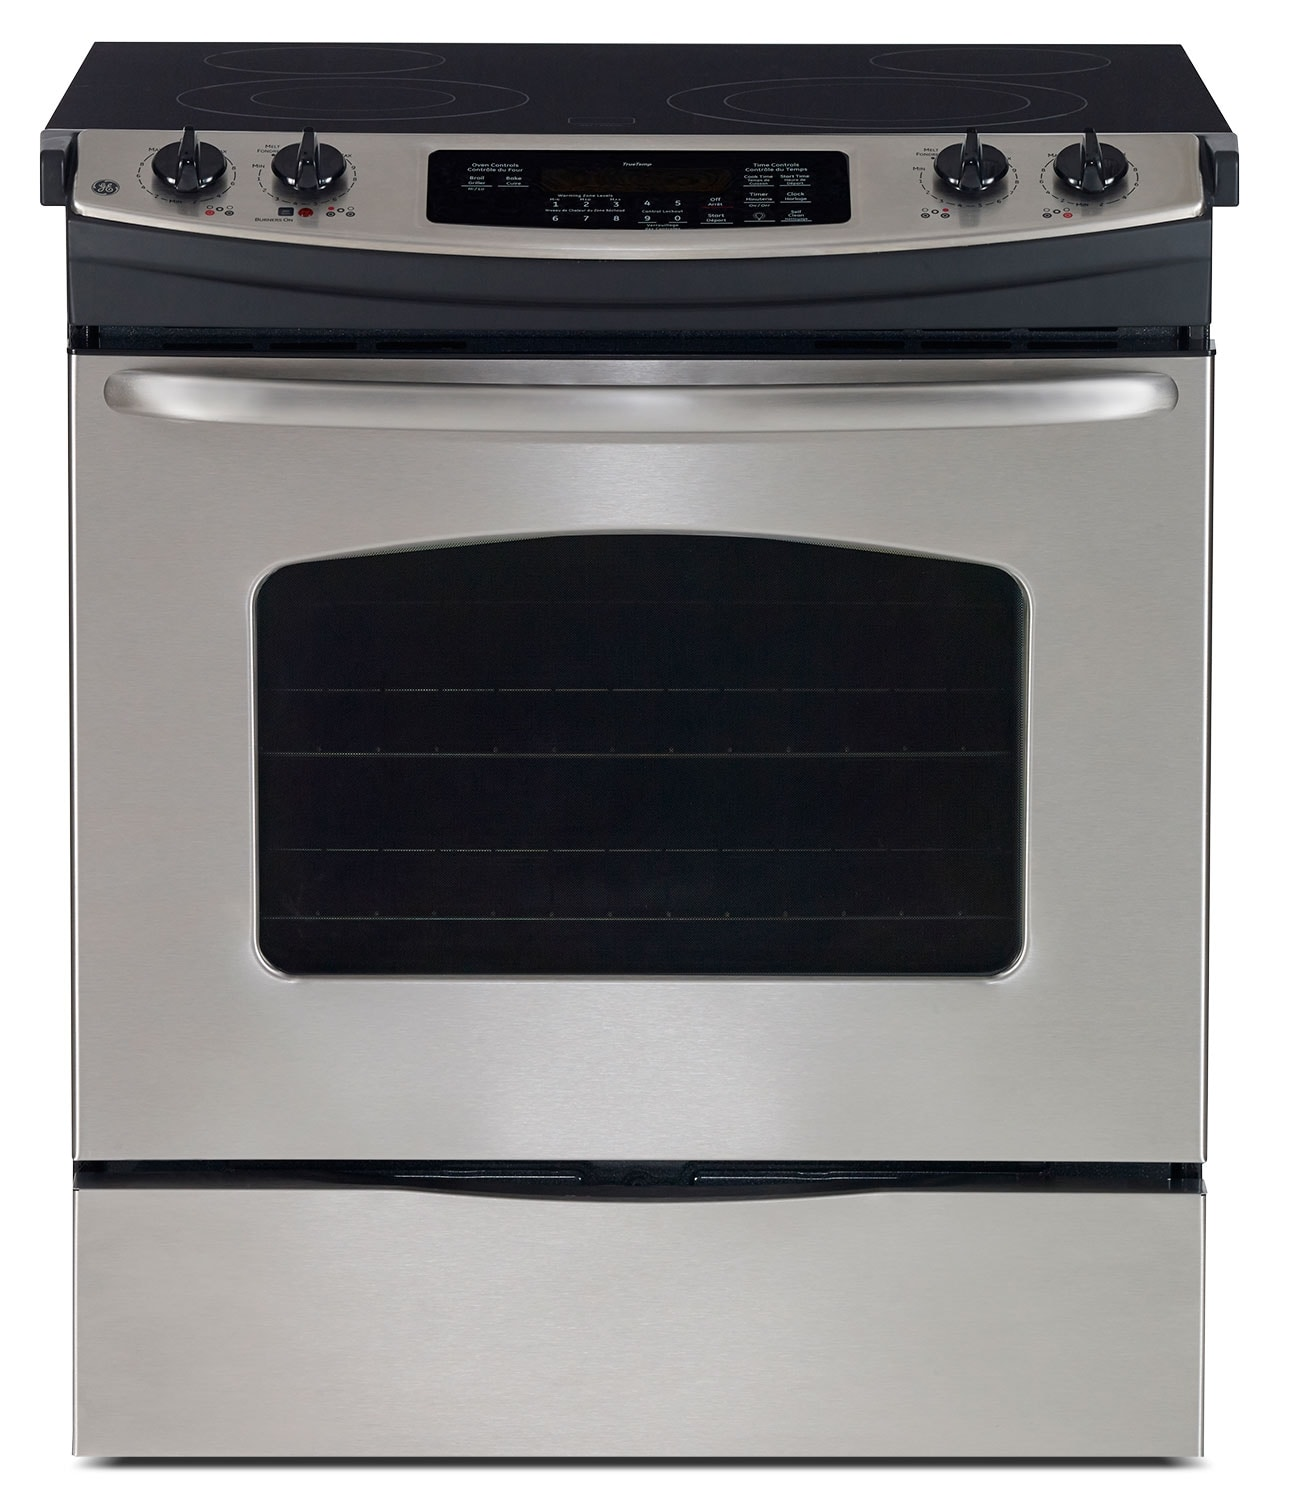 GE Stainless Steel Slide-In Electric Range (5.2 Cu. Ft.) - JCSP41SVSS